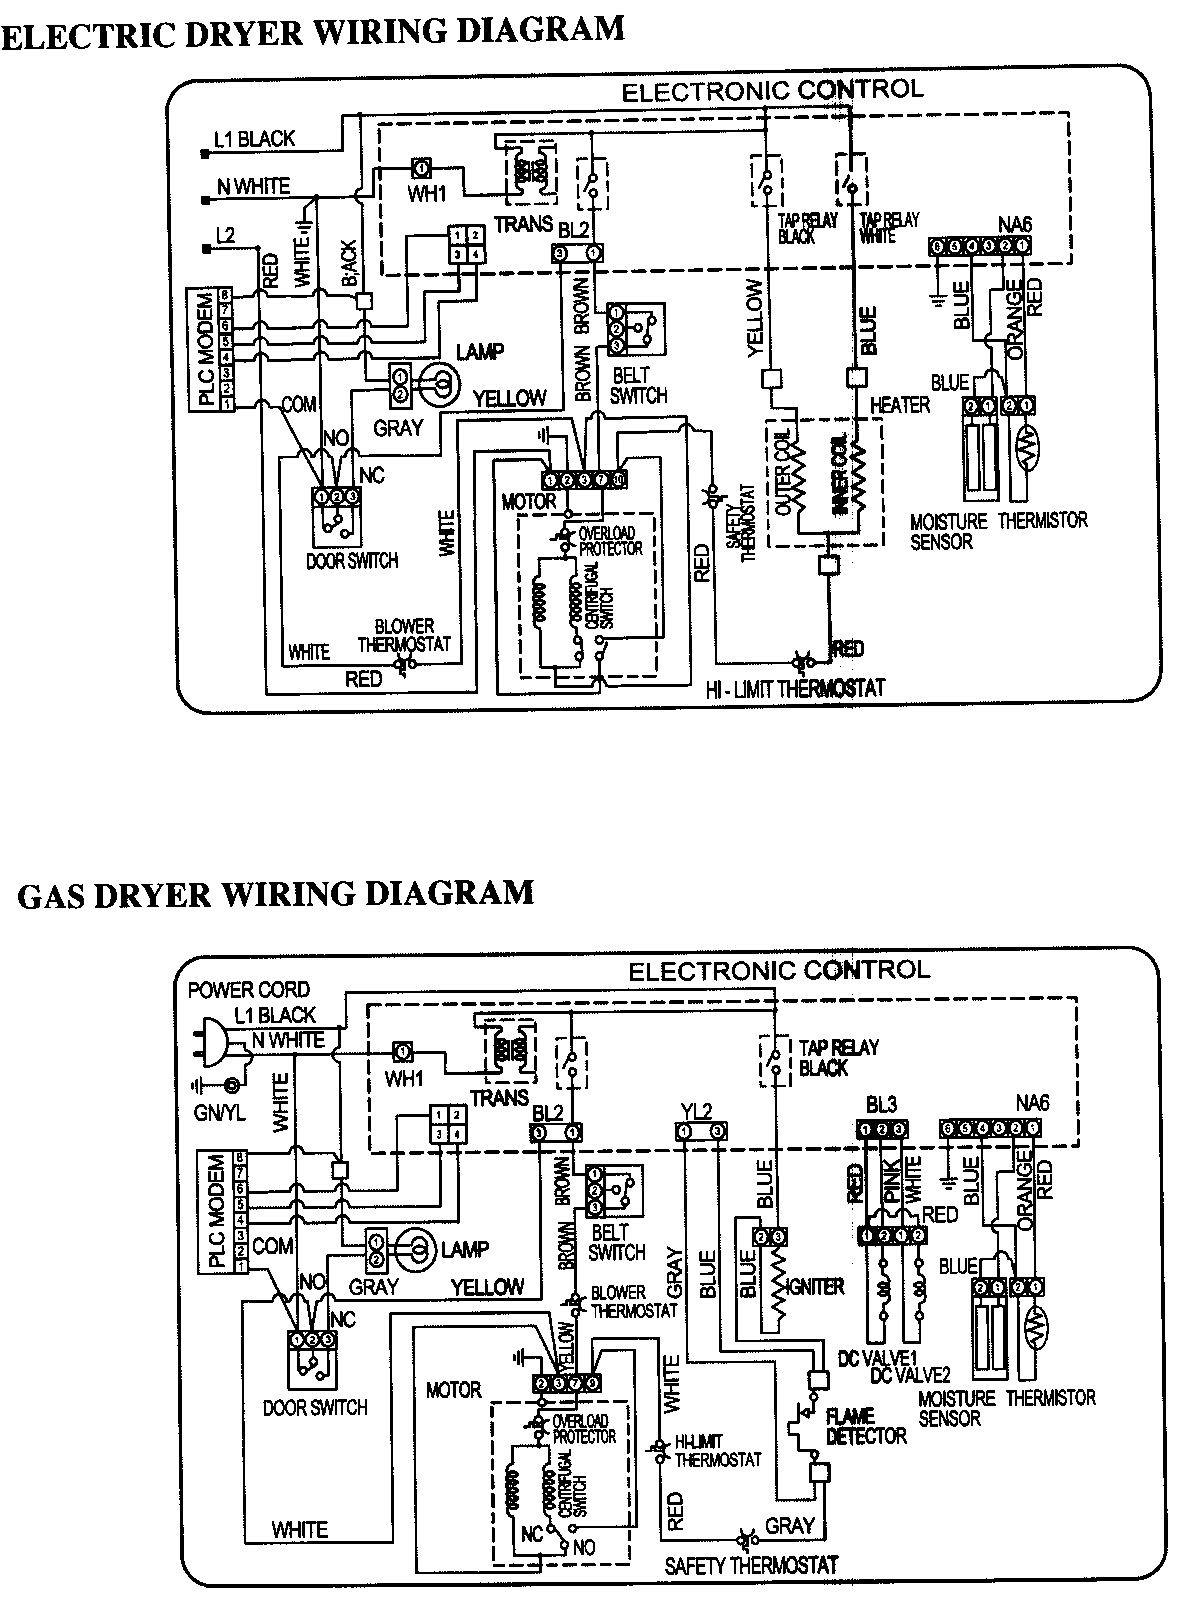 Mercruiser 4 3lx Tachometer Wiring Auto Electrical Diagram Maserati Biturbo Diagrams Related With